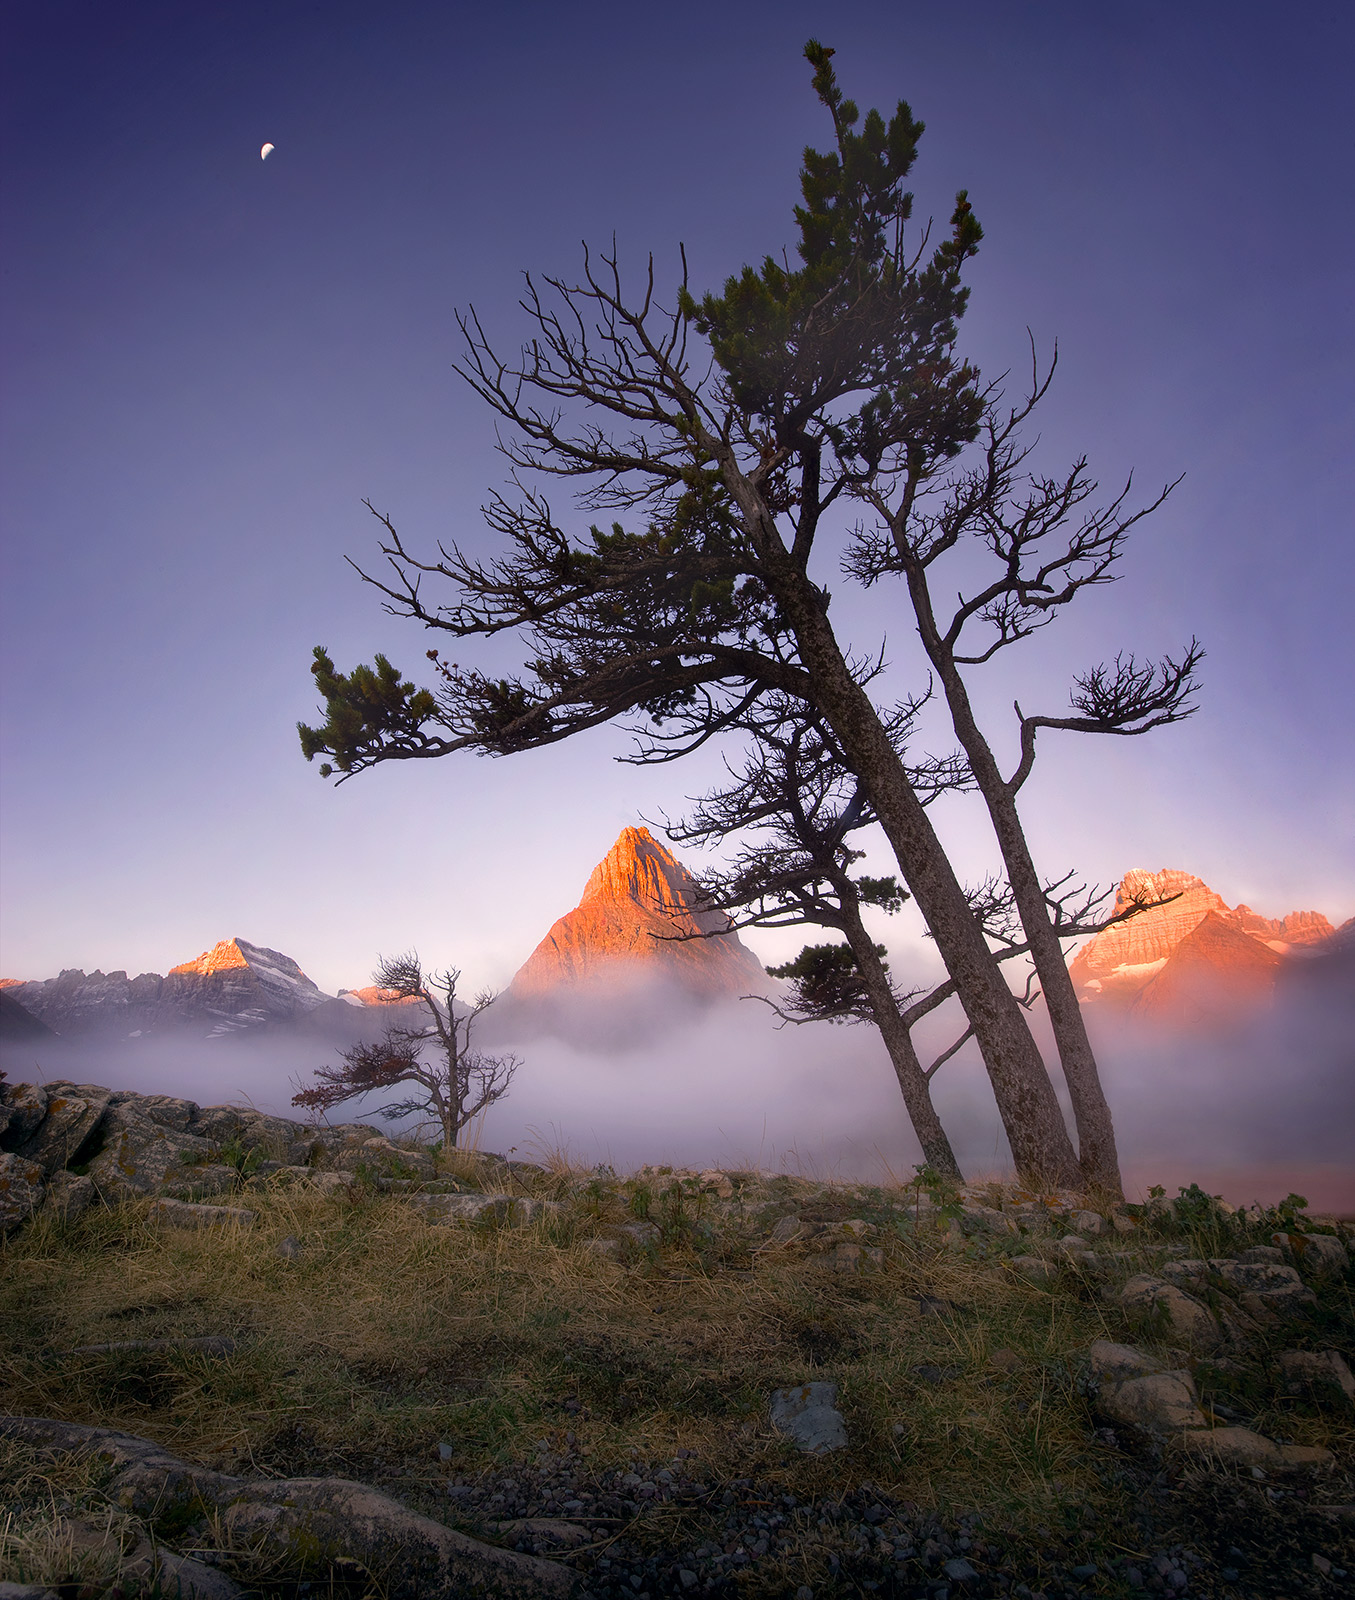 Old trees tower over peaks illuminated in the distance at sunrise under the crescent moon in Glacier Park, Montana.